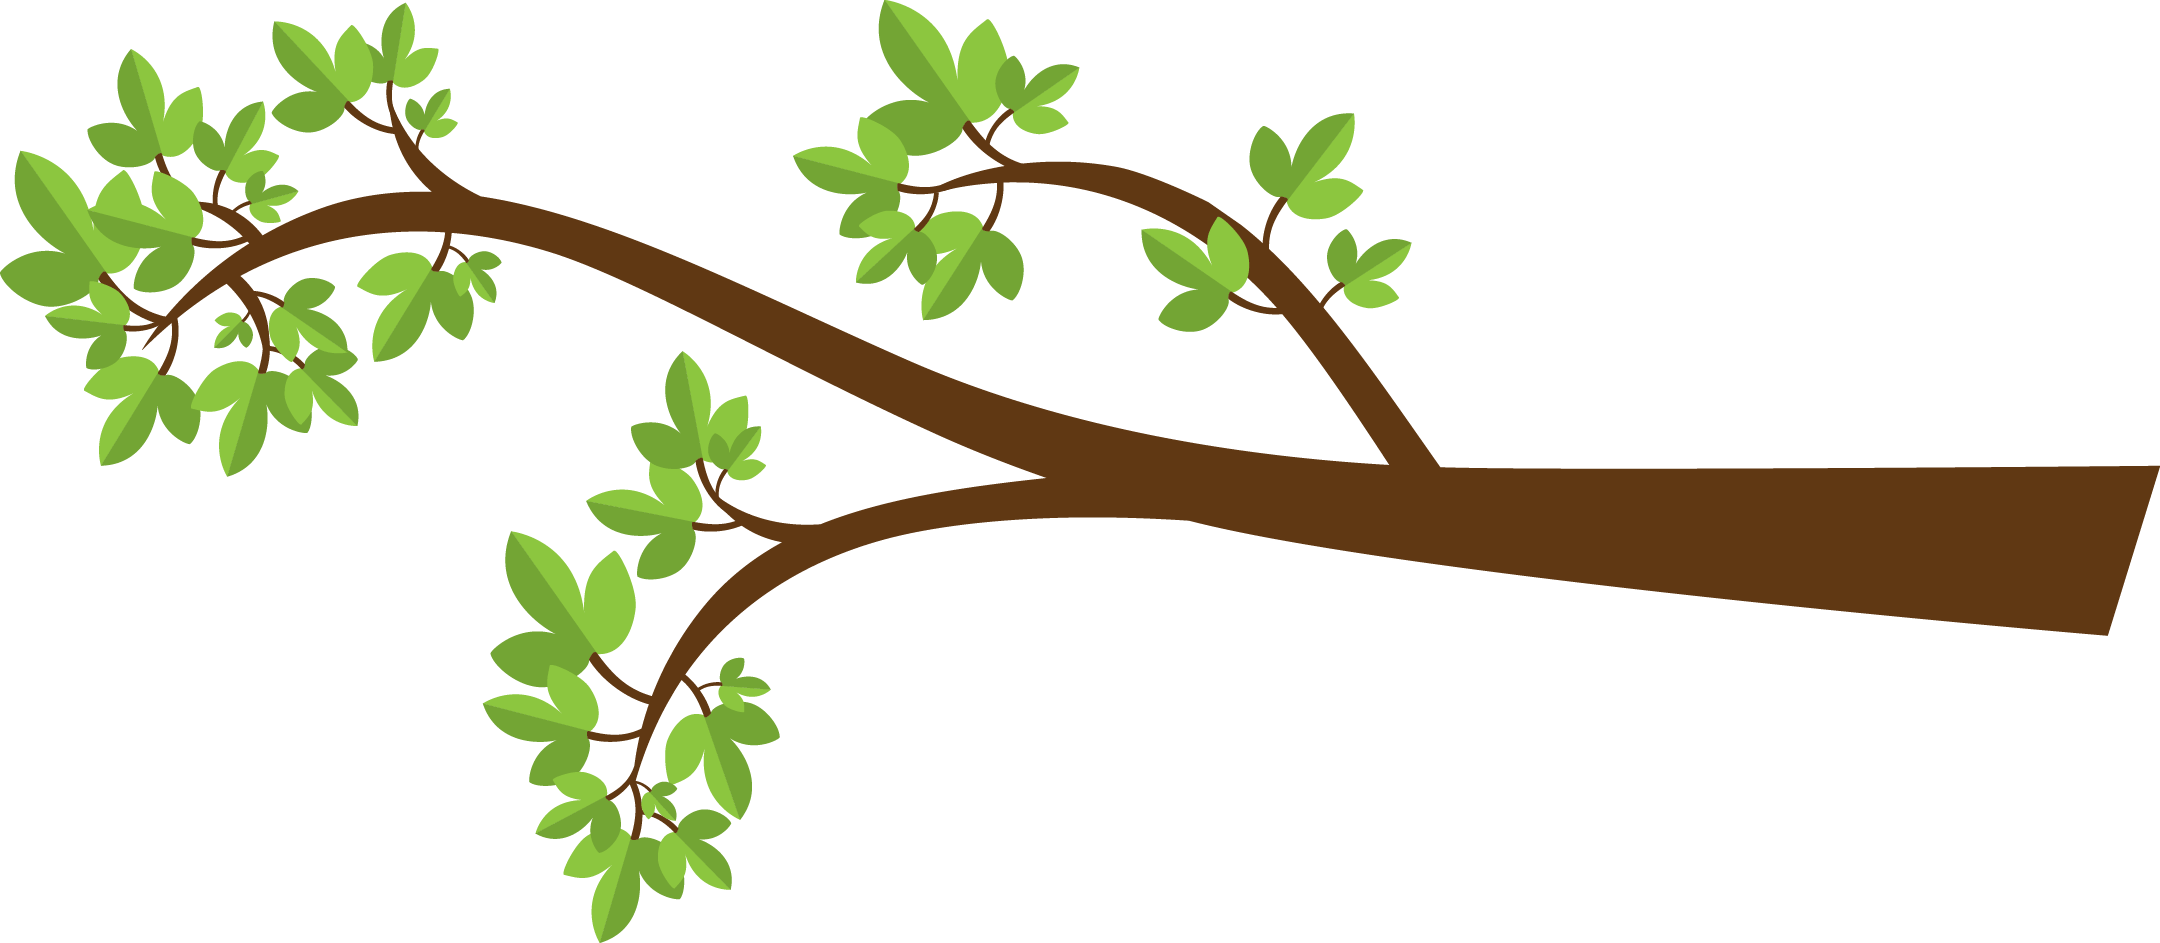 Twig clipart clip art freeuse library Twig clipart 3 » Clipart Station clip art freeuse library